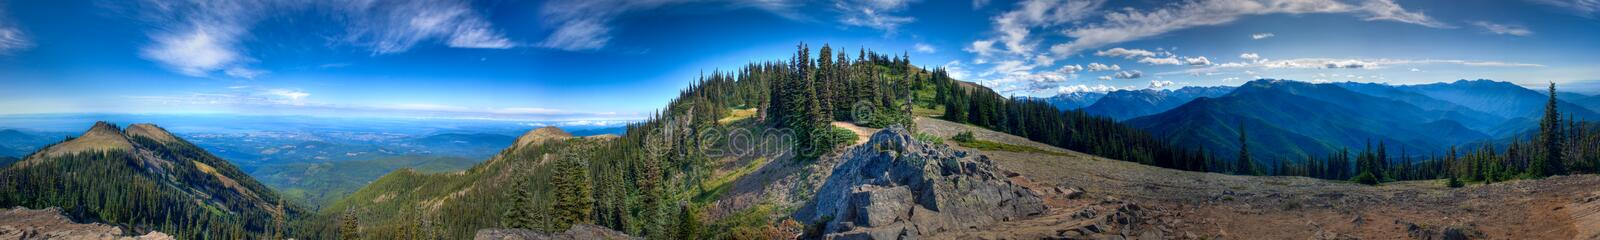 Olympic National Park Panorama stock images